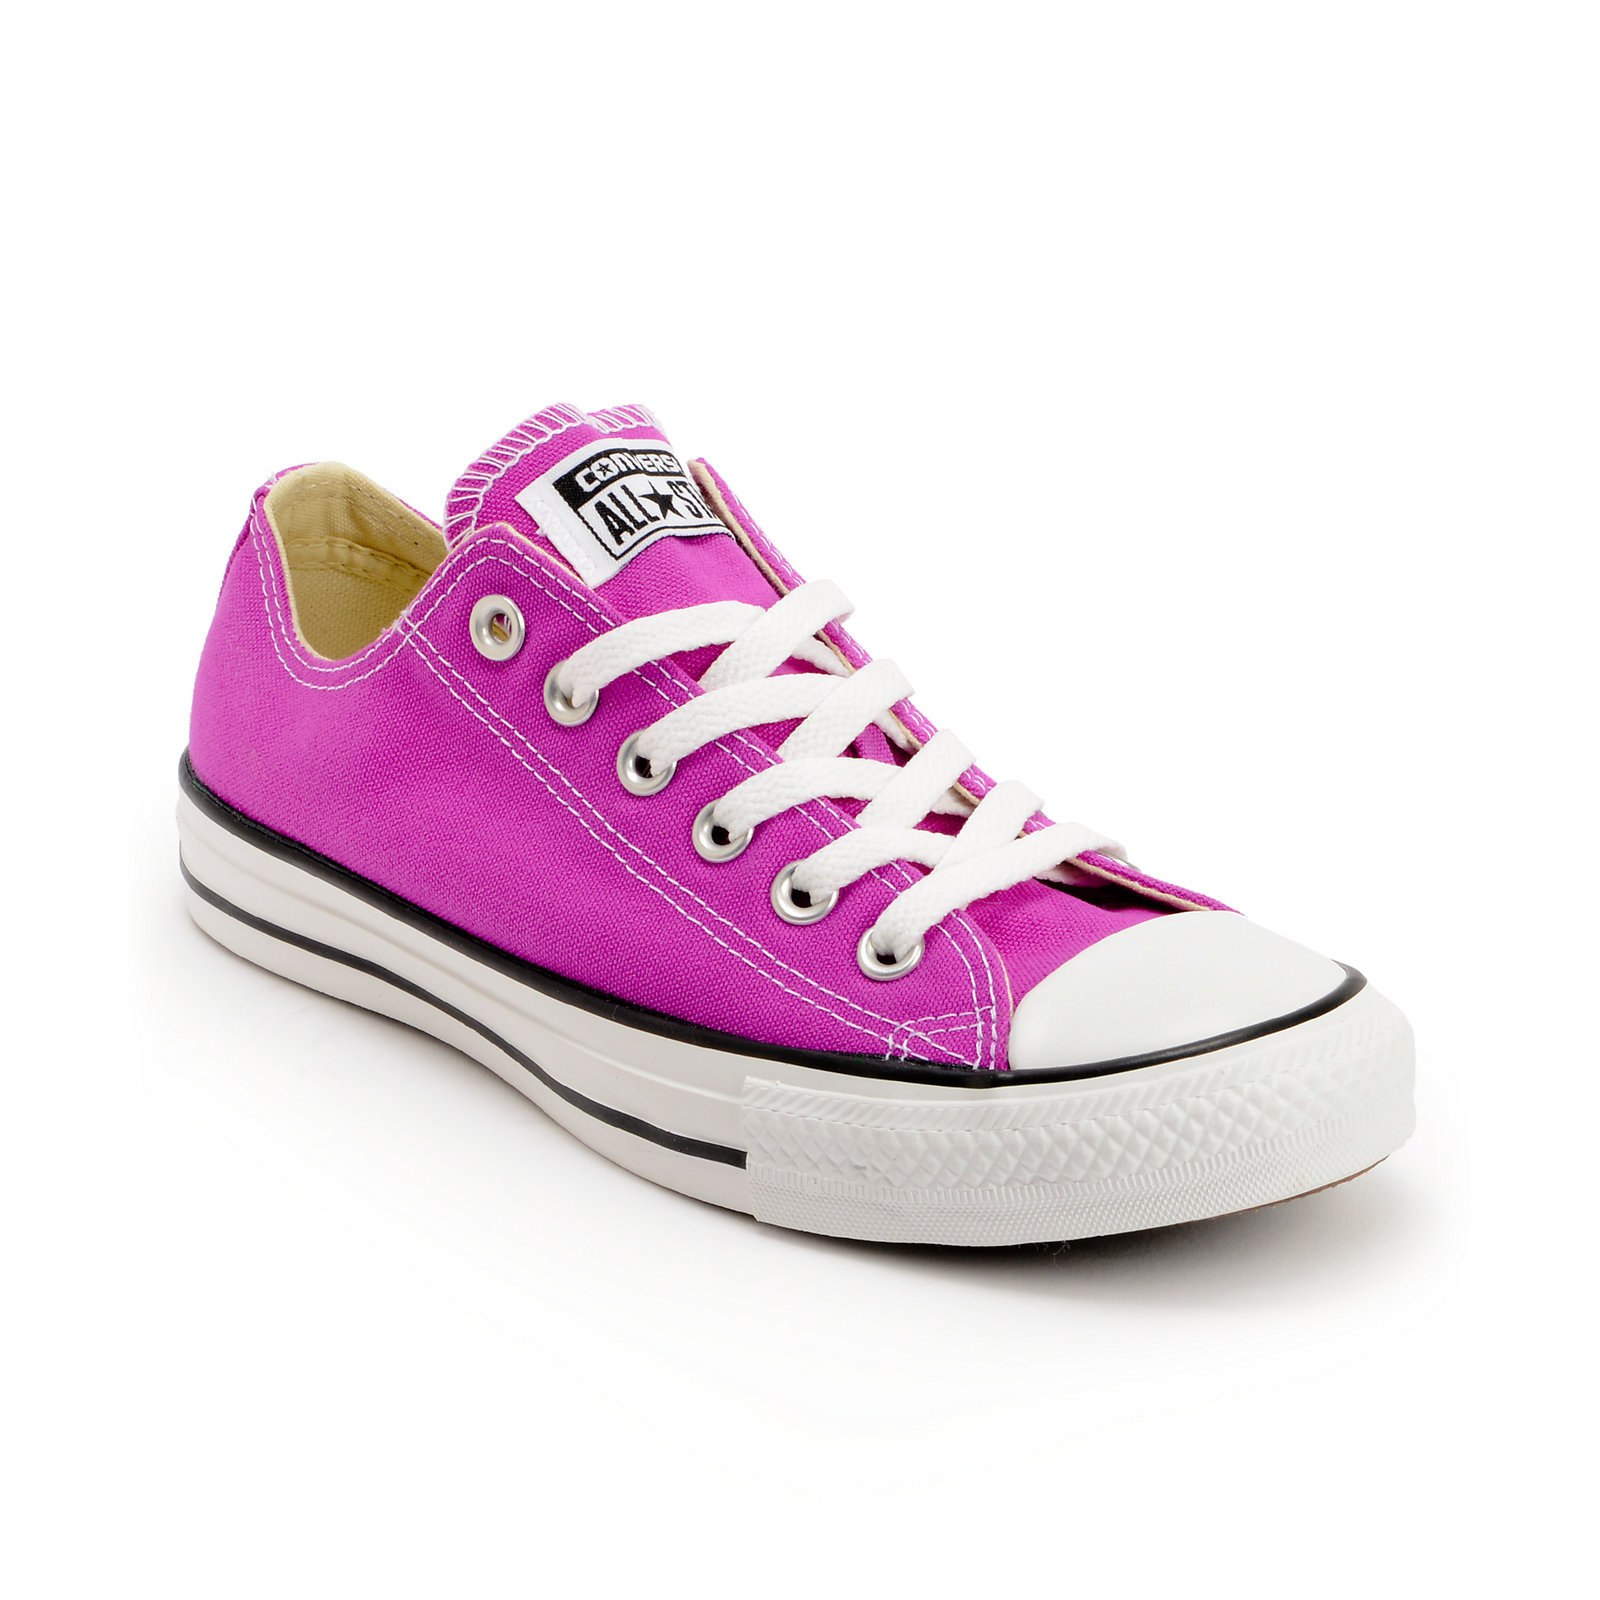 All purple converse